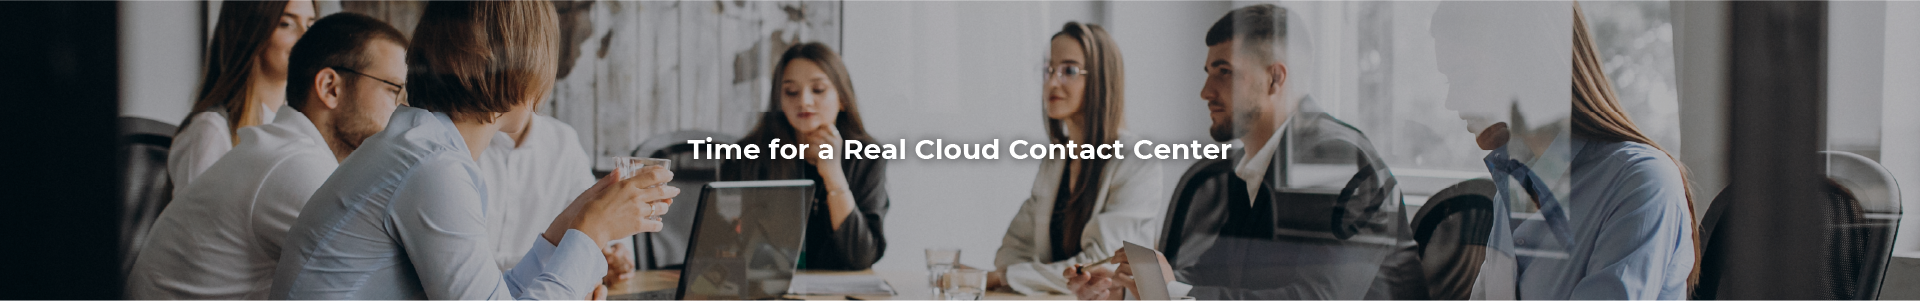 time-for-a-real-cloud-contact-center-nubitel